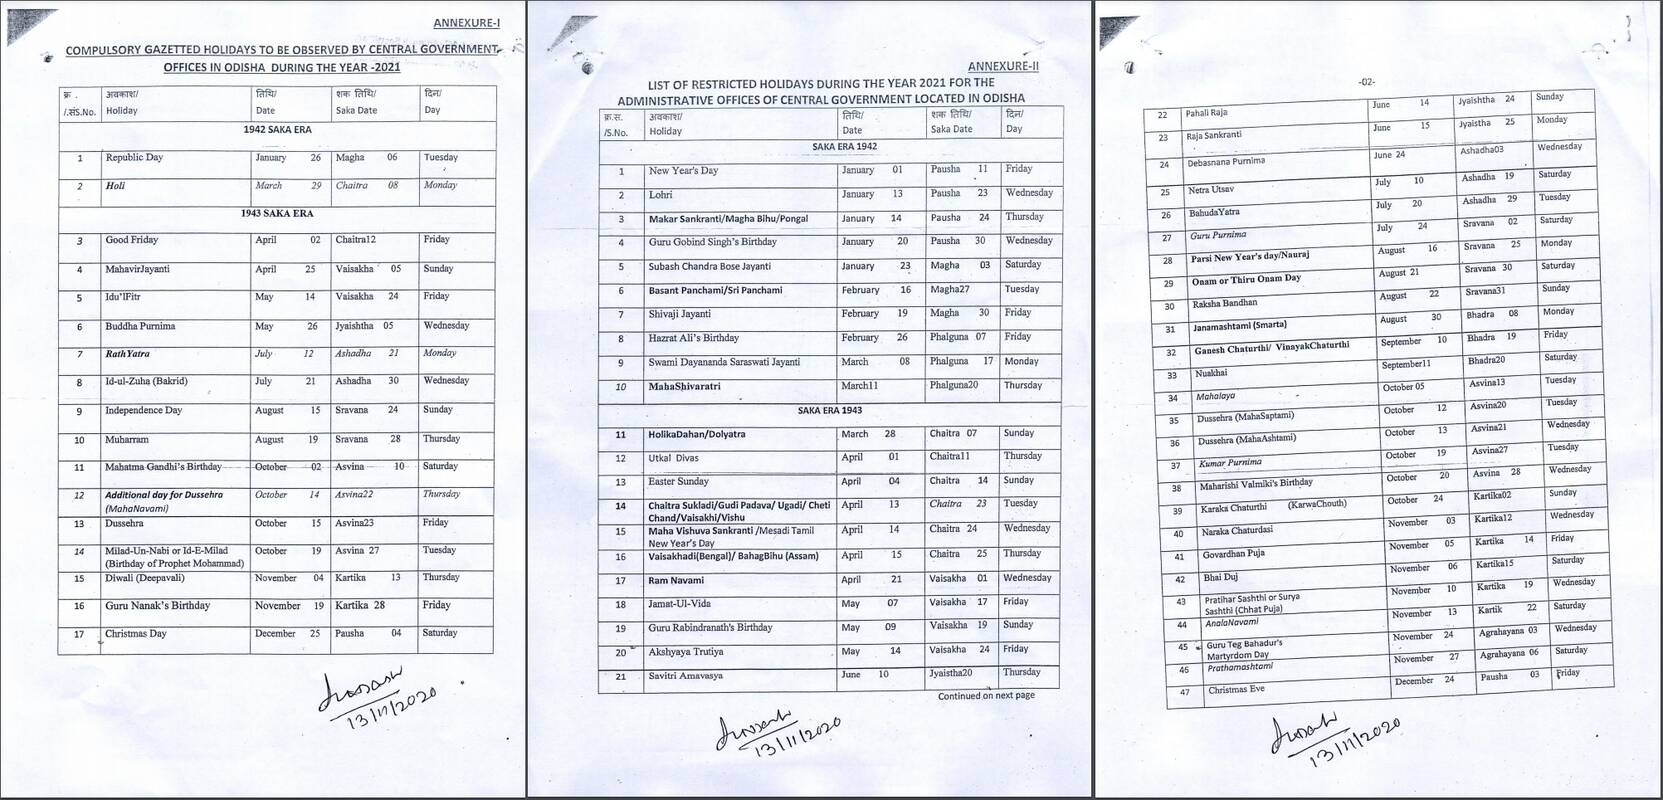 Holiday List for the Calendar Year 2021 for Central Govt. Offices in Odisha: CGEWCC Bhubaneswar